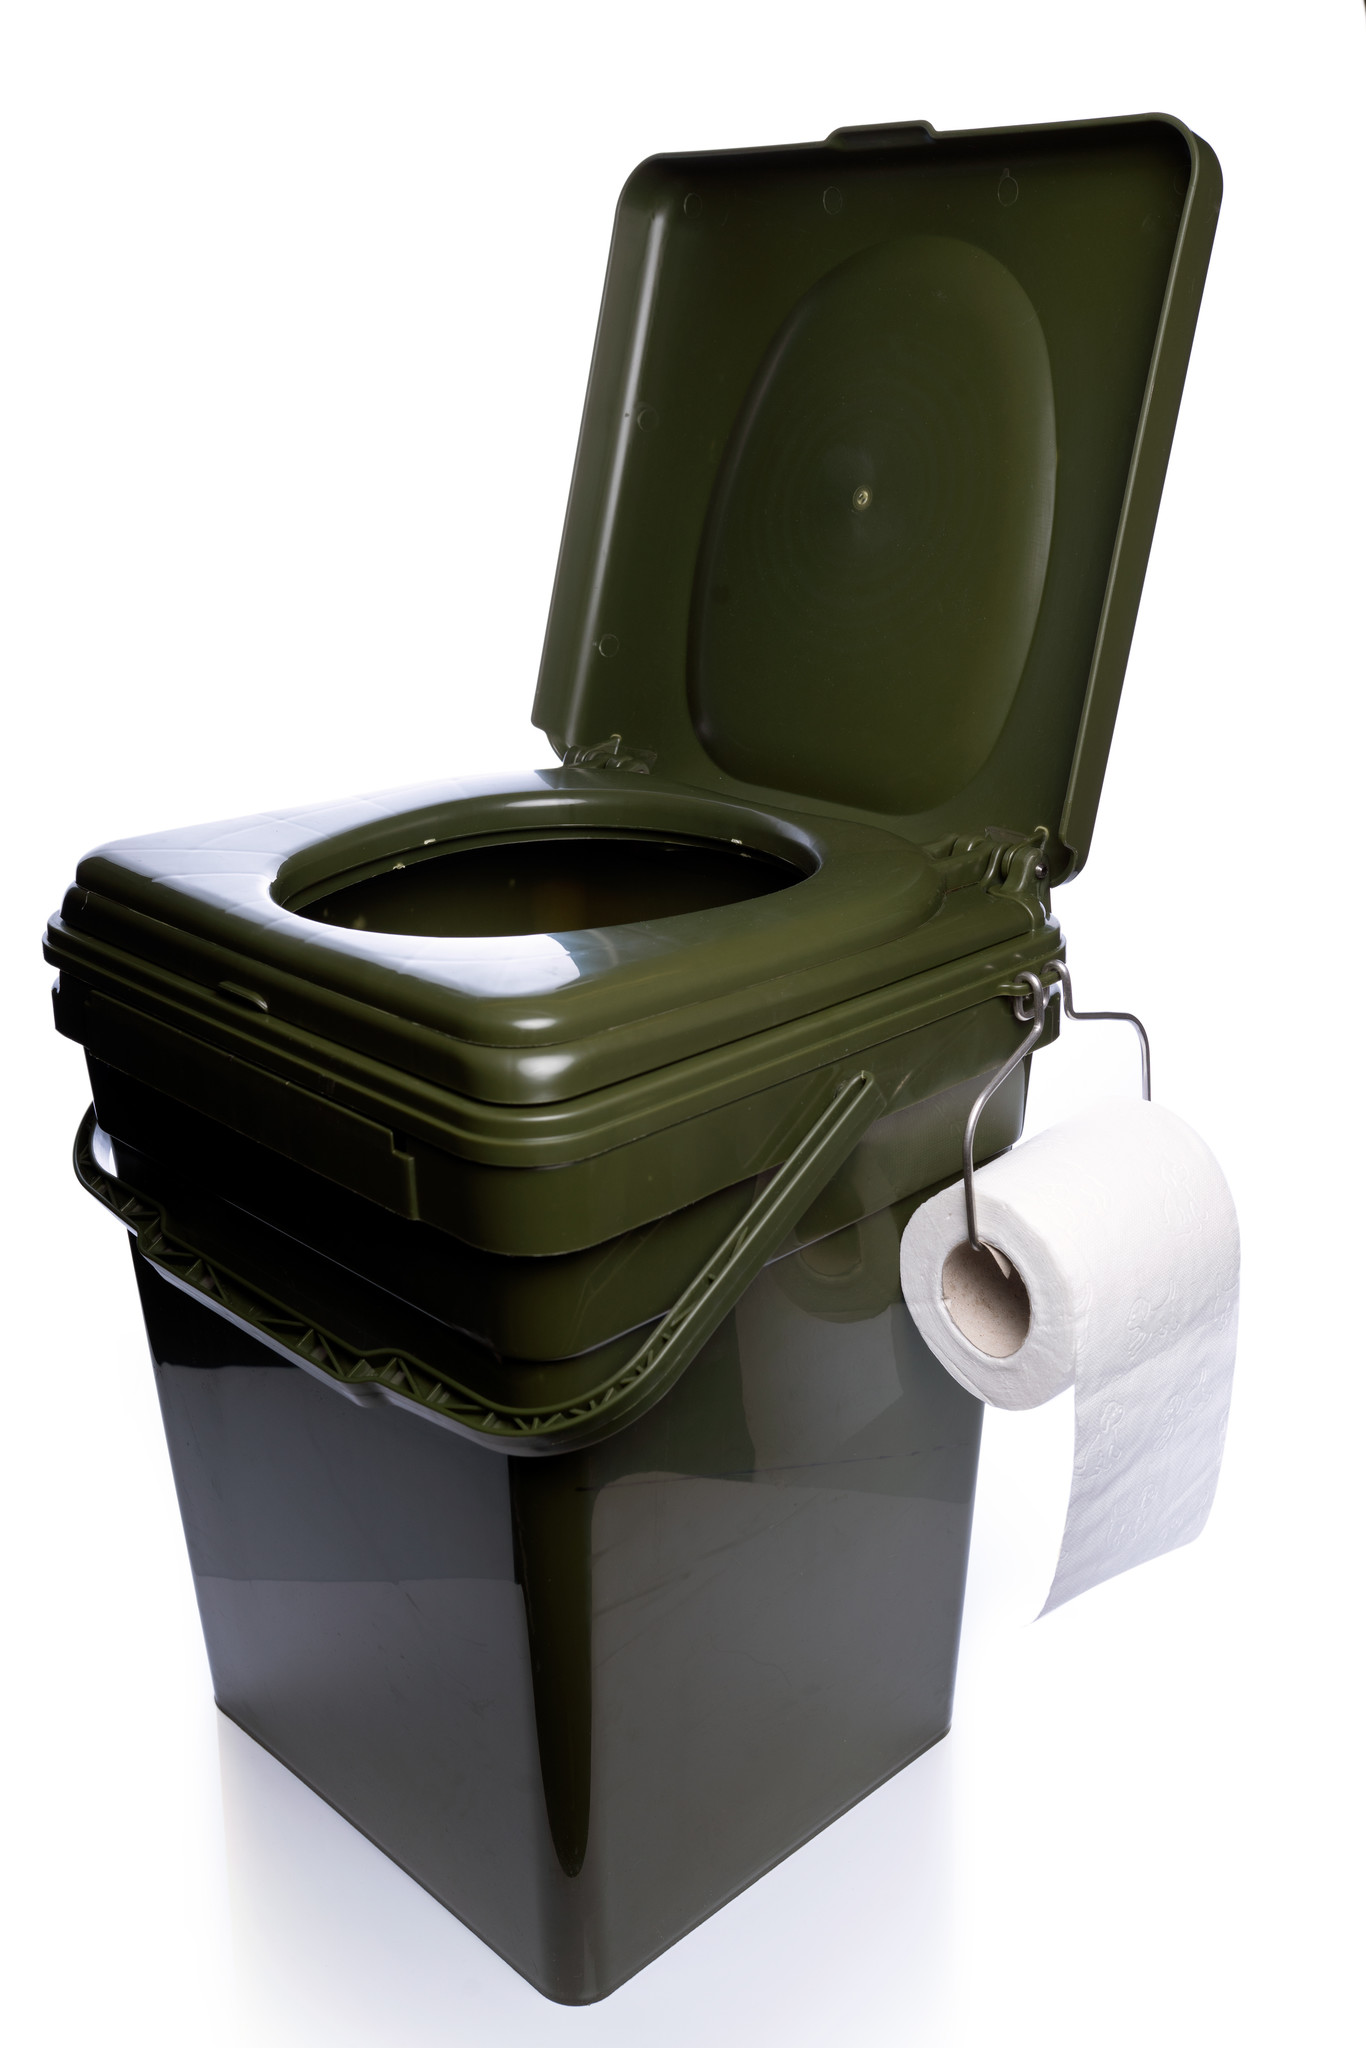 Toiletseat-RidgeMonkey-House-of-Carp-Camping